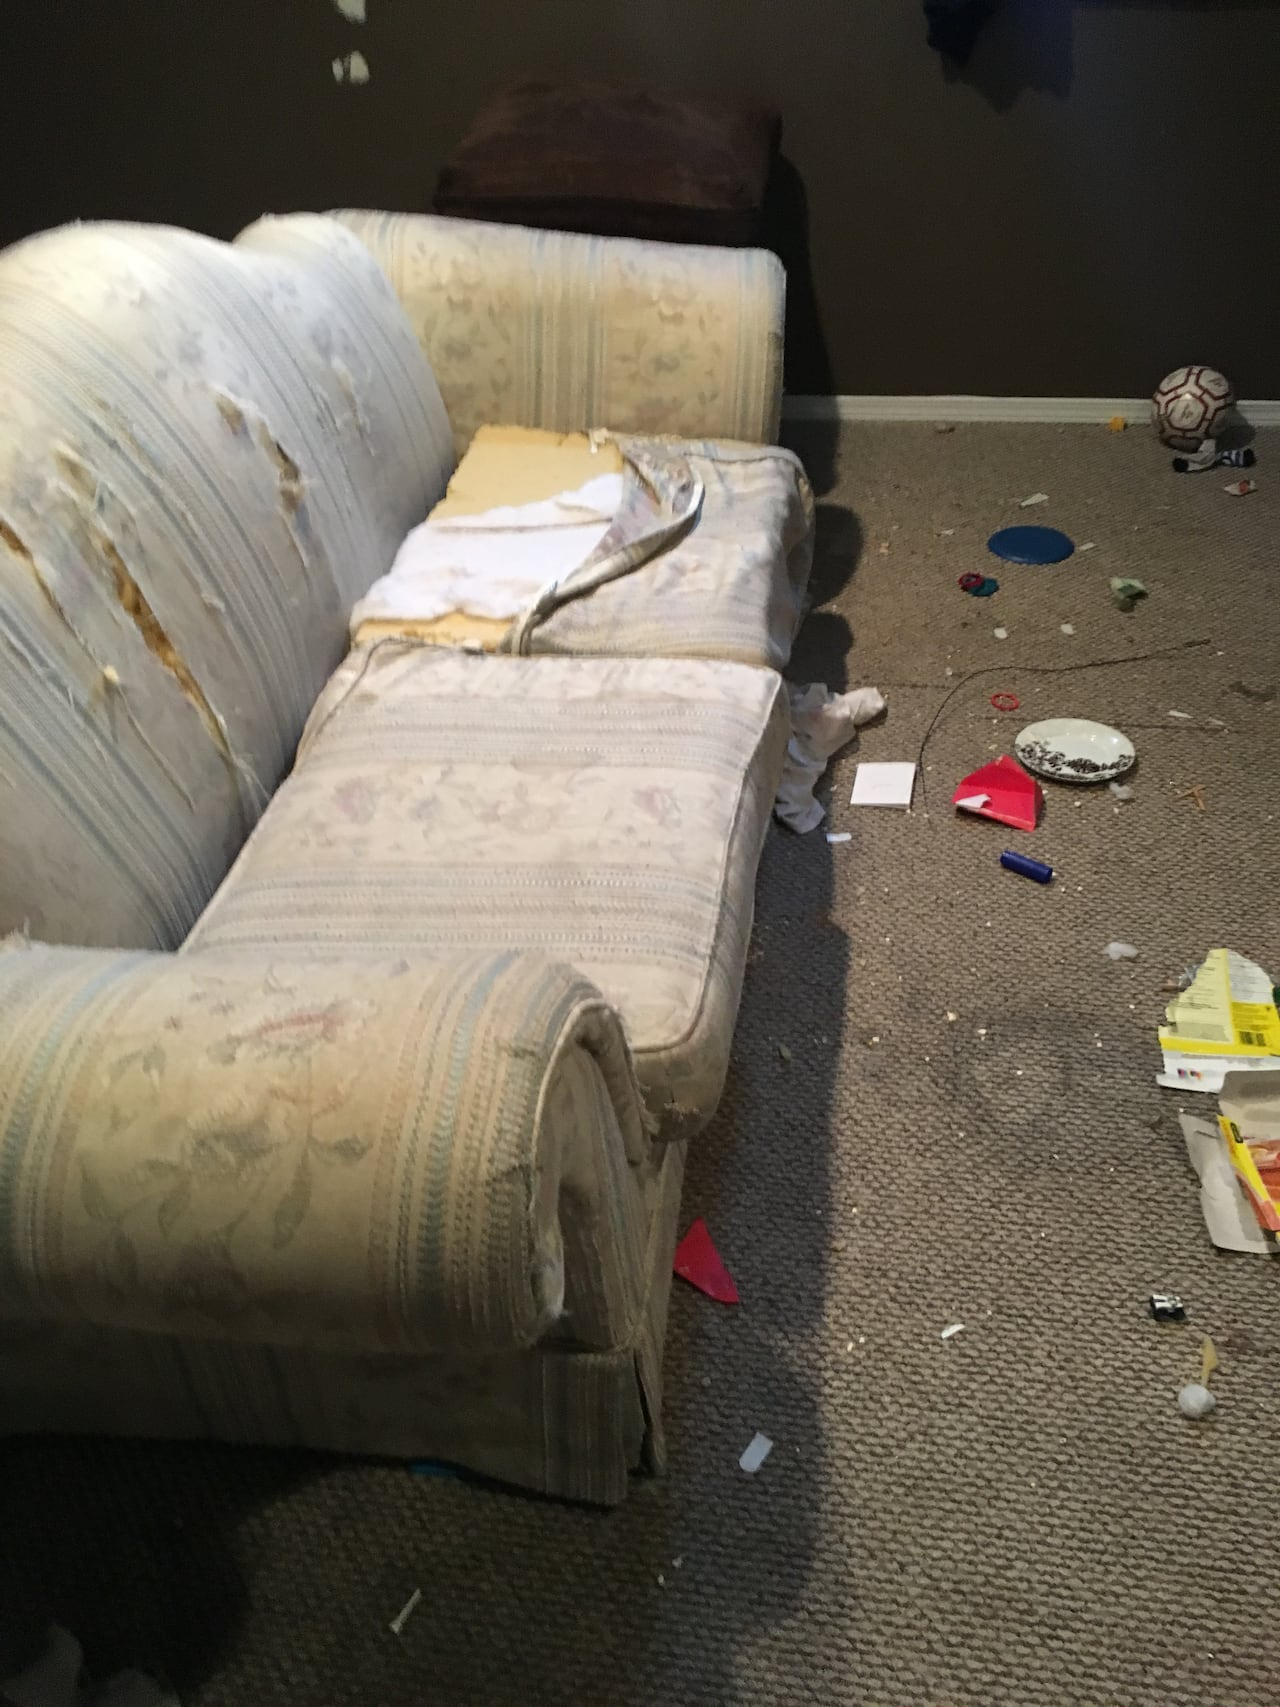 Crack pipes and beer cans': Renters trash Lloydminster house, leave